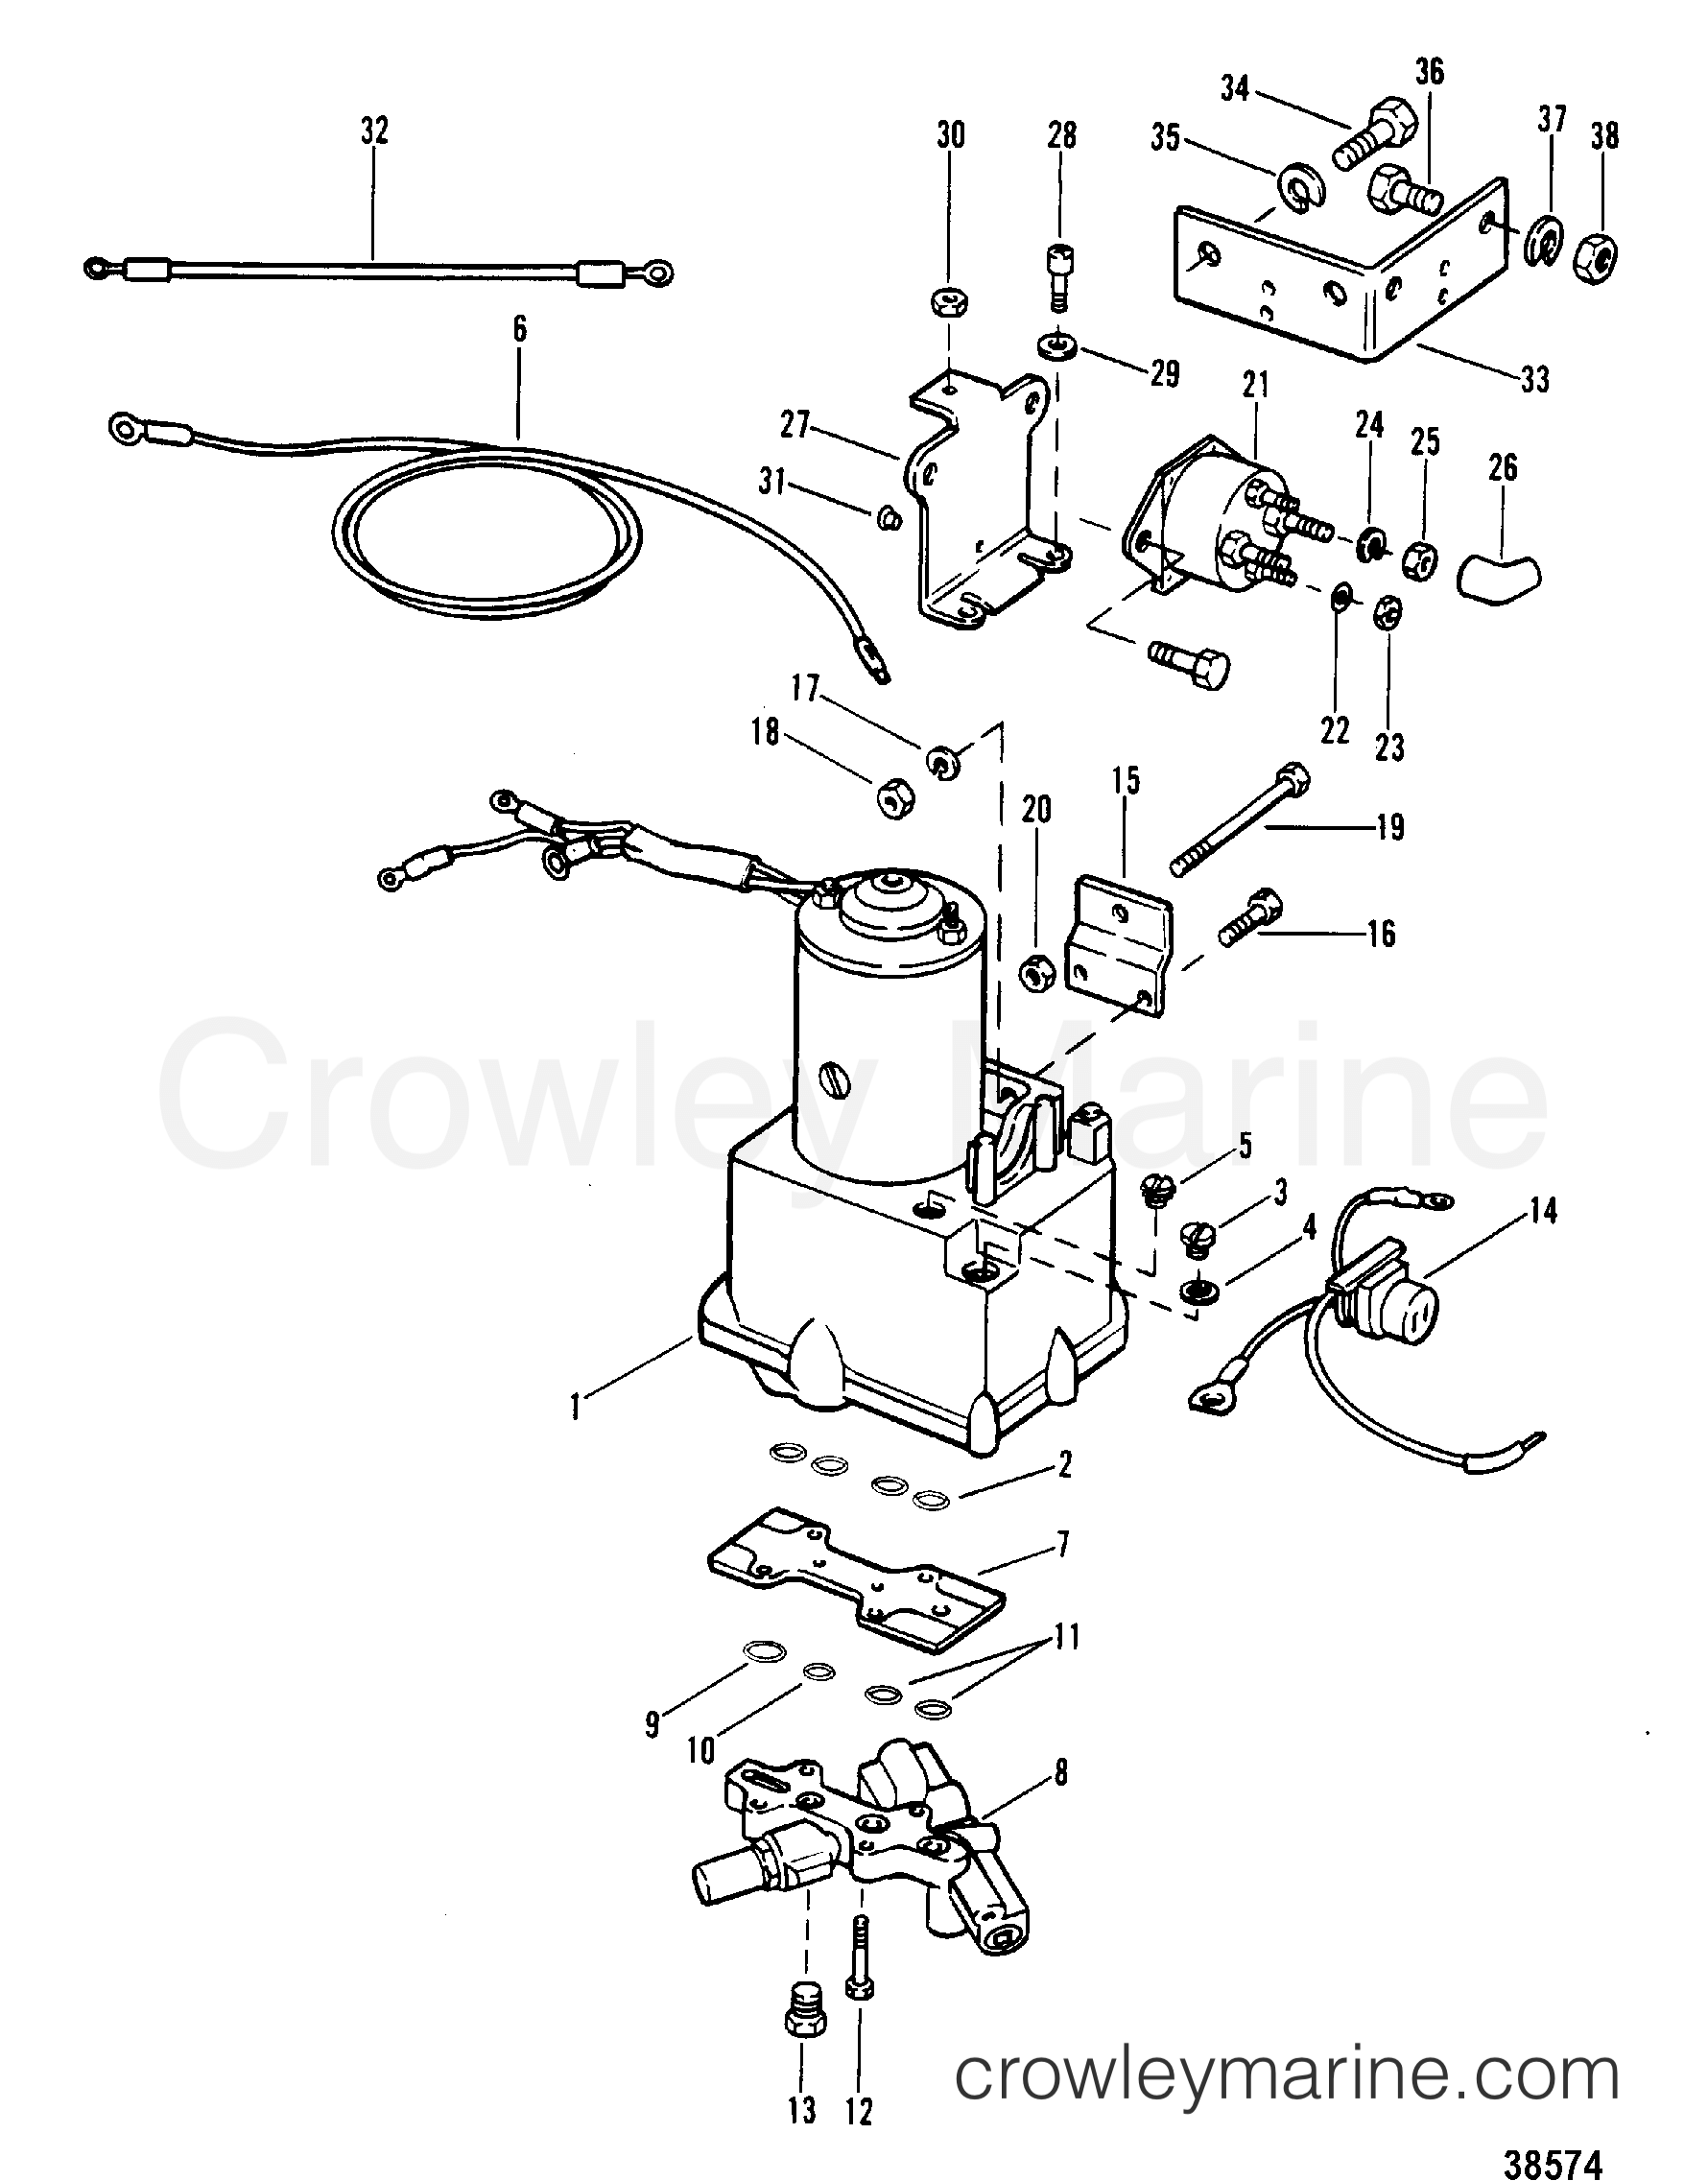 Power Trim Components Without Circuit Breaker And Fuse